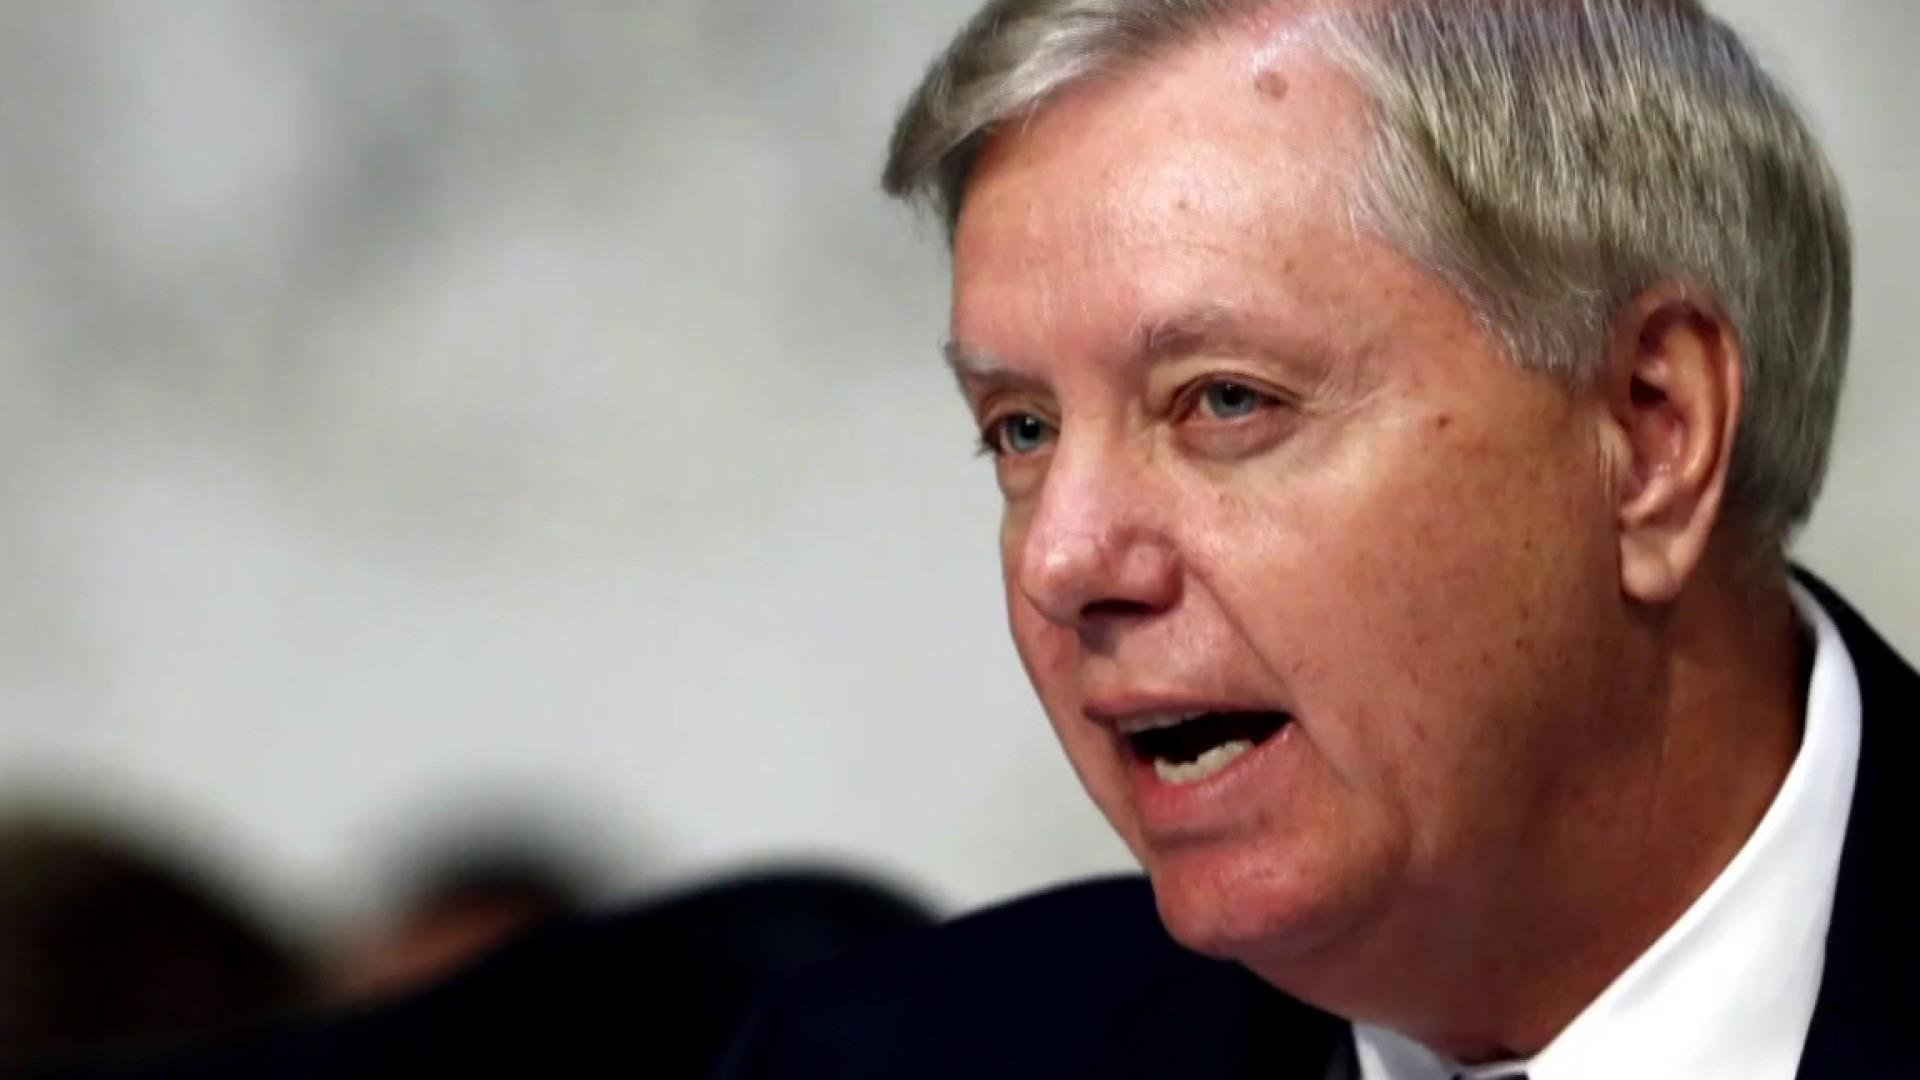 Battle for control of the Senate could see Graham's ouster